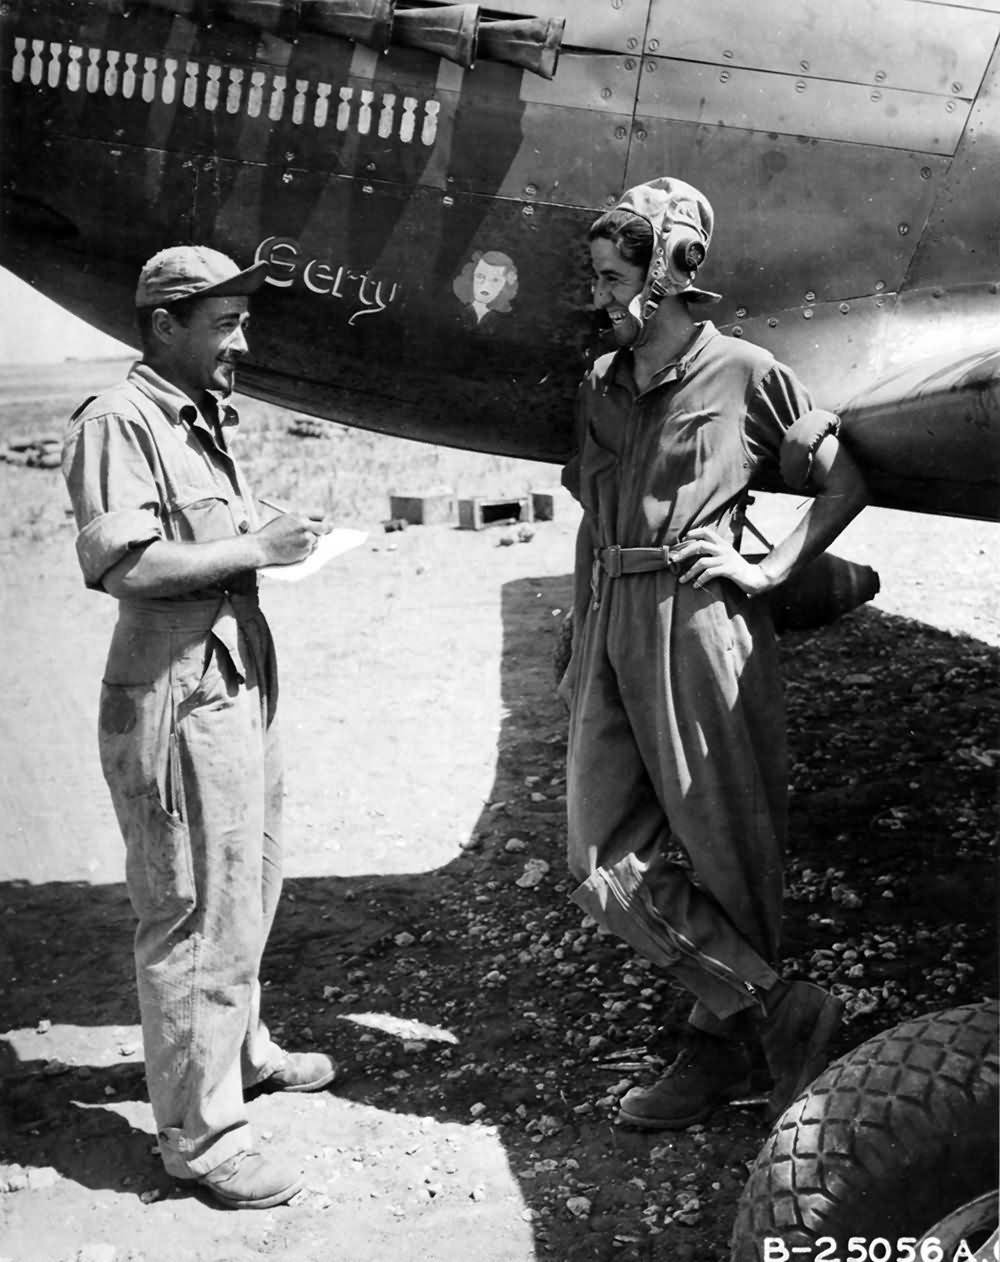 A-36 pilot 2lt Joseph Carparelli 522nd FBS 27th Fighter Bomber Group July 1943 Africa